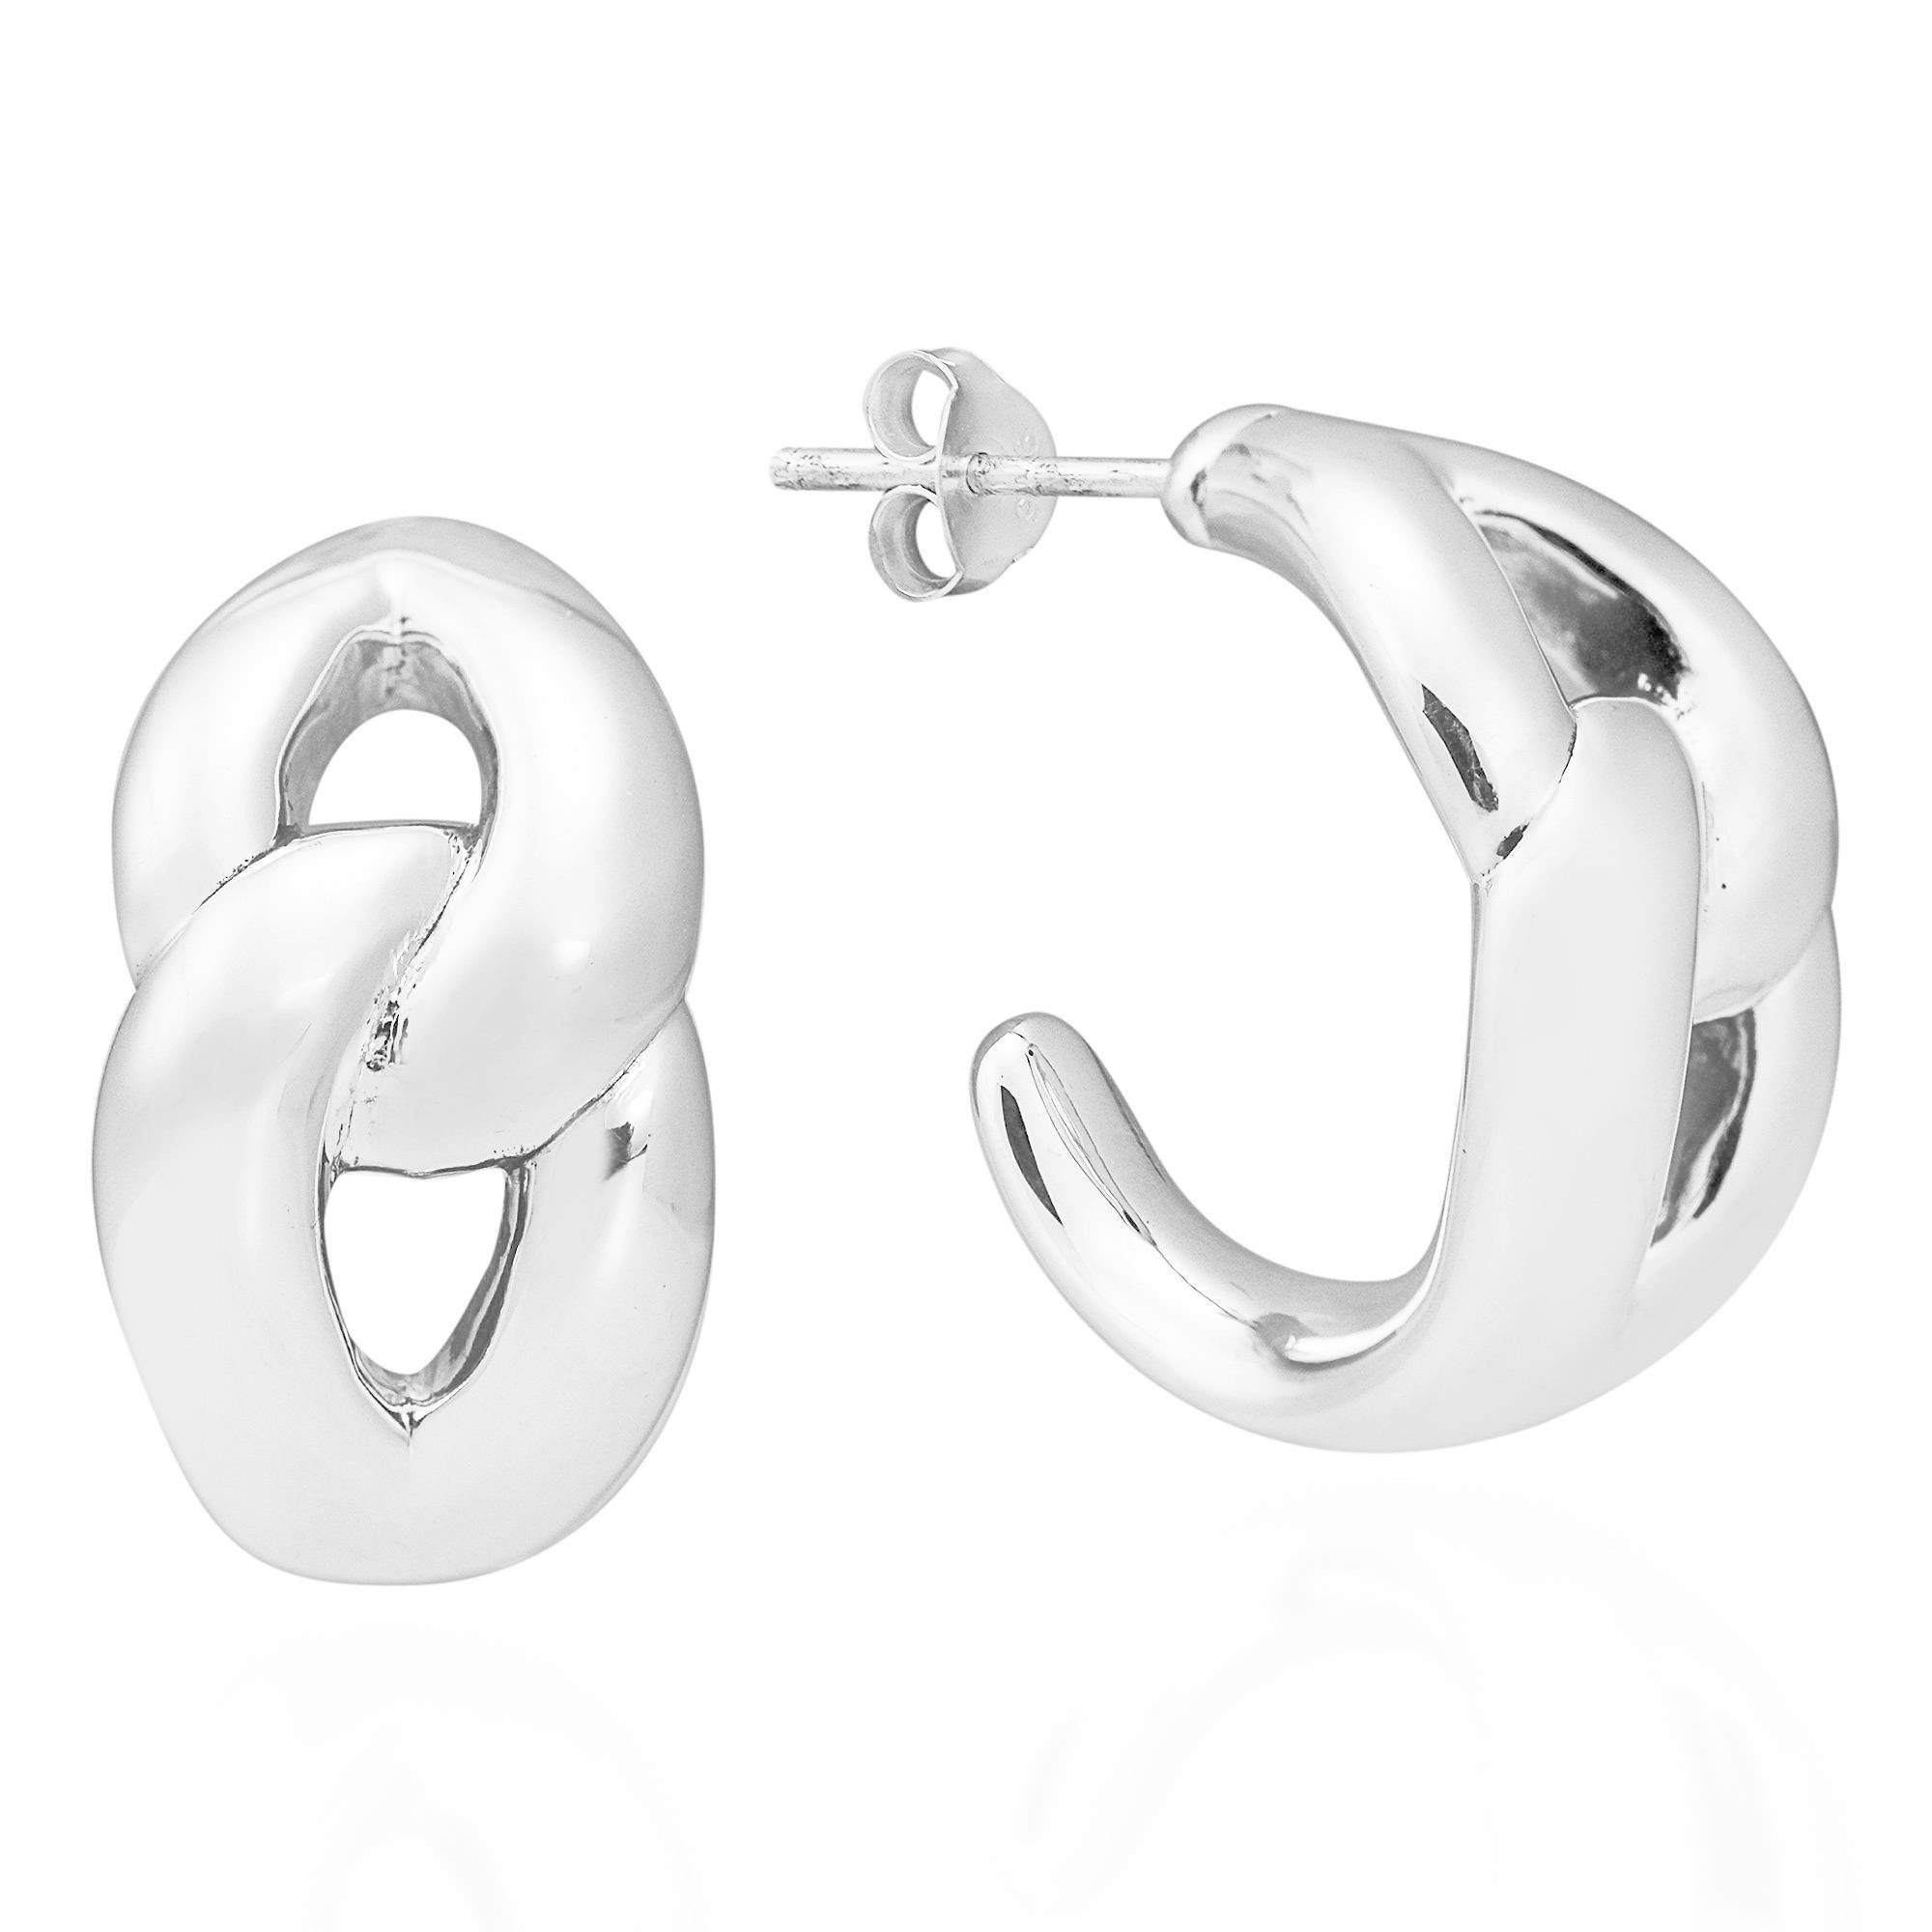 b368a4ff3 Shop Handmade Intertwined Link .925 Sterling Silver Post Earrings  (Thailand) - On Sale - Free Shipping On Orders Over $45 - Overstock.com -  10298466